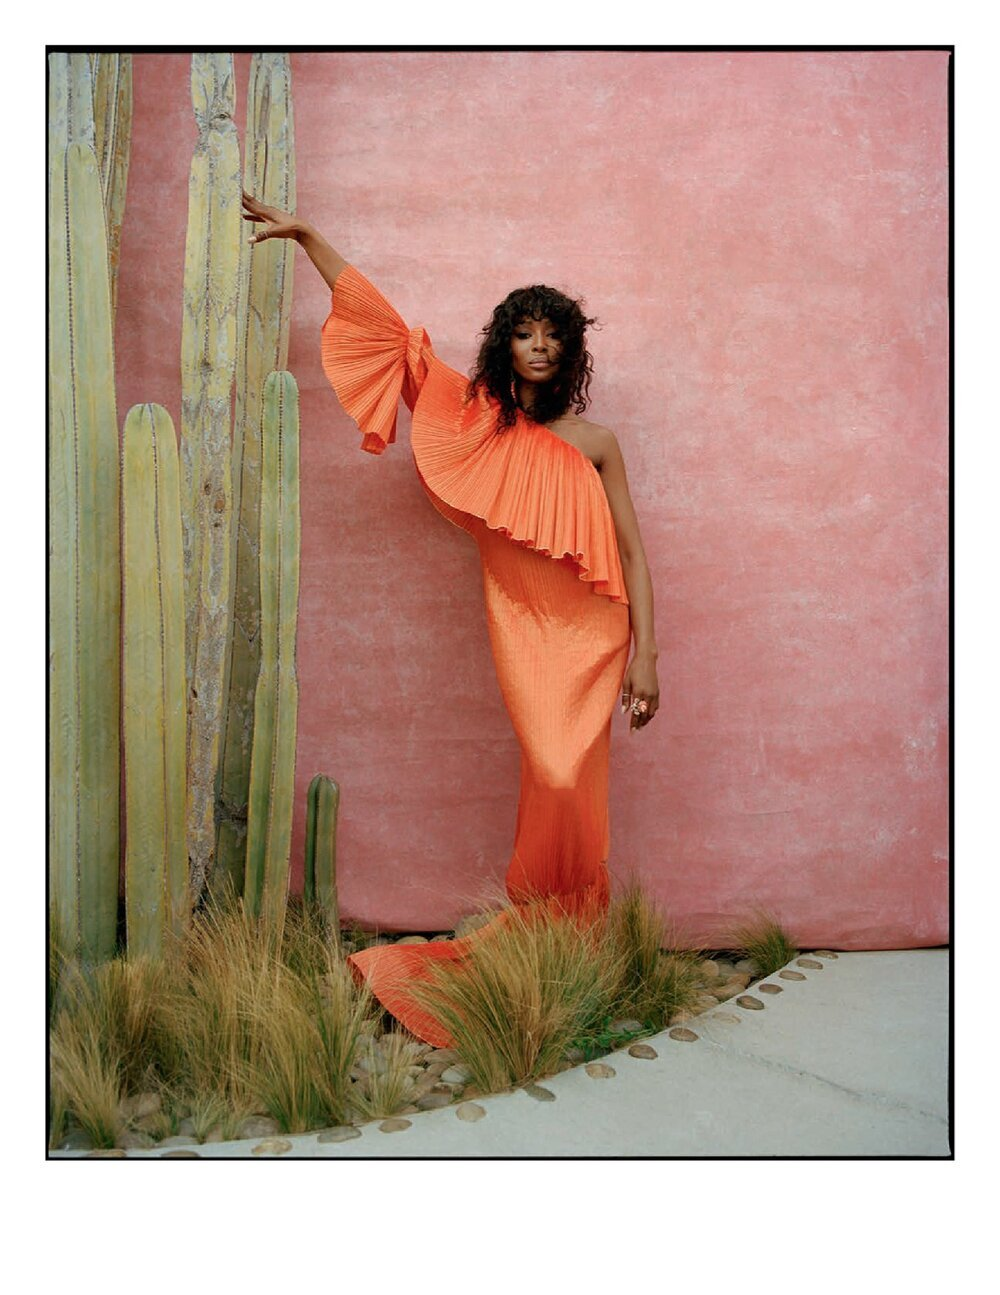 Naomi Campbell for Vogue Spain July/August Cover Story. Photographed by Nadine Ijewere. Hair by Lorenzo Barcella and makeup by Fran Cooper.